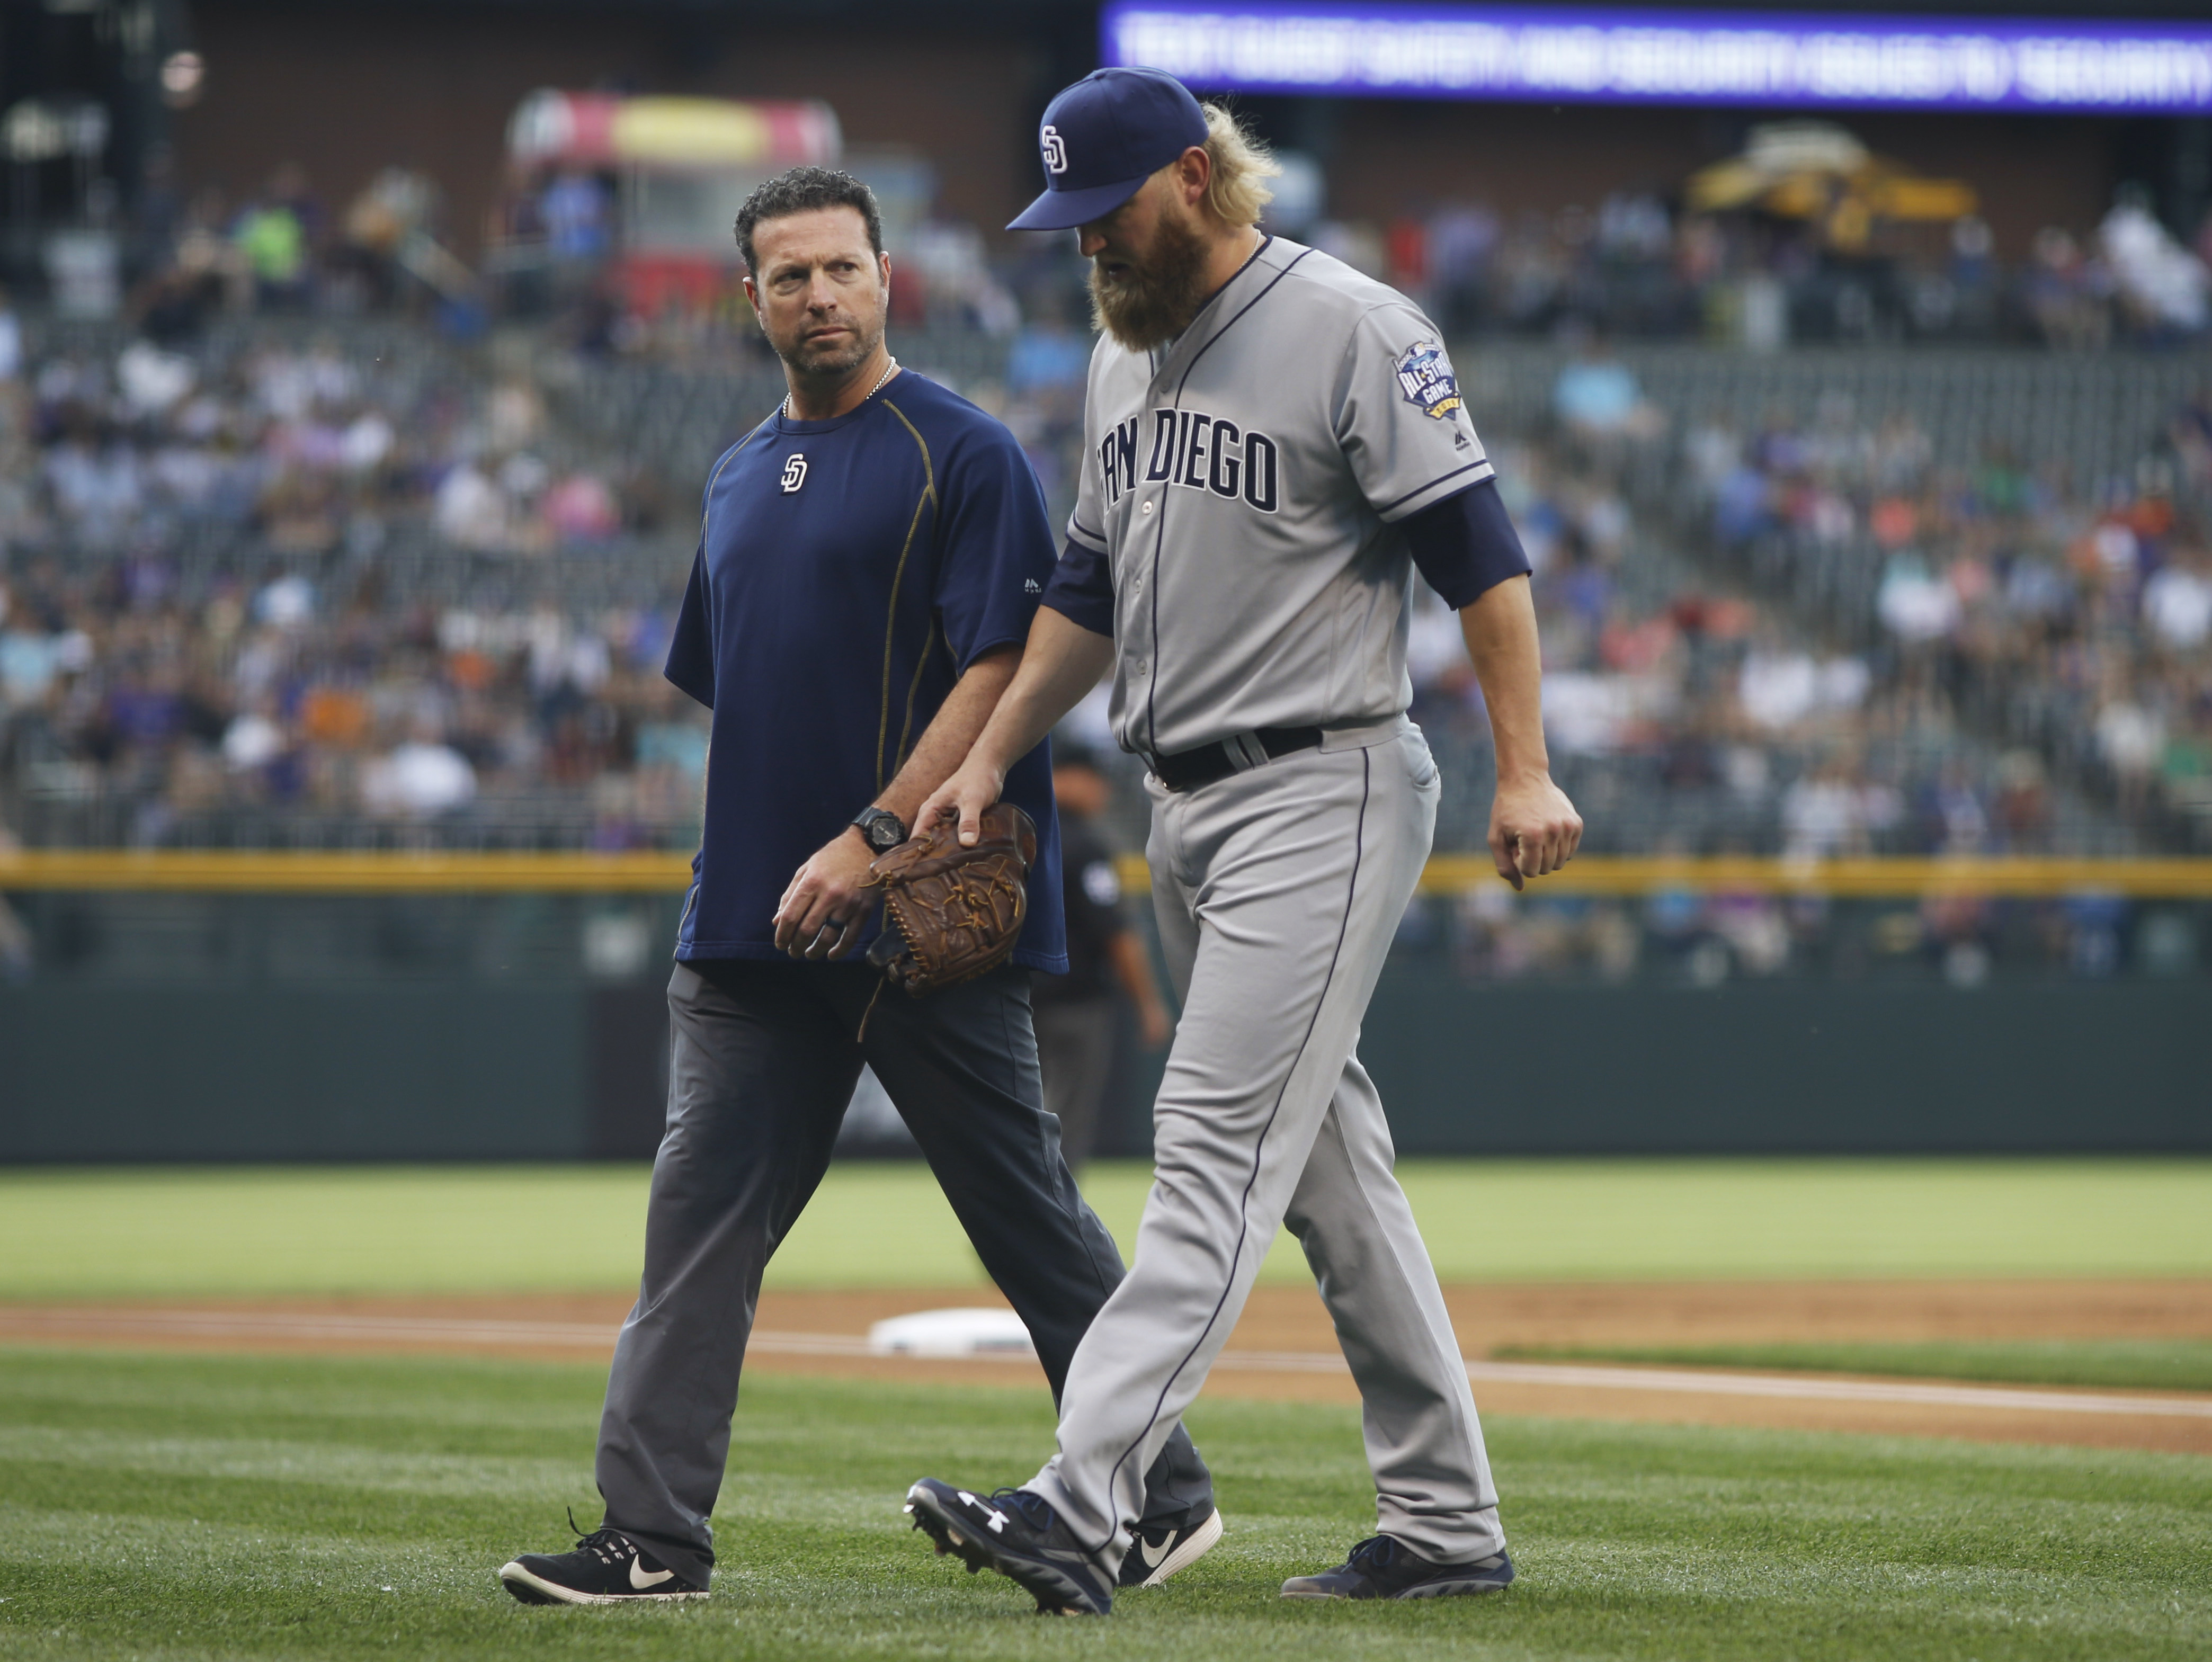 San Diego Padres head trainer Mark Rogow, left, accompanies San Diego Padres starting pitcher Andrew Cashner as they walk off the field after Cashner was pulled from the mound after striking out Colorado Rockies leadoff hitter Charlie Blackmon during the